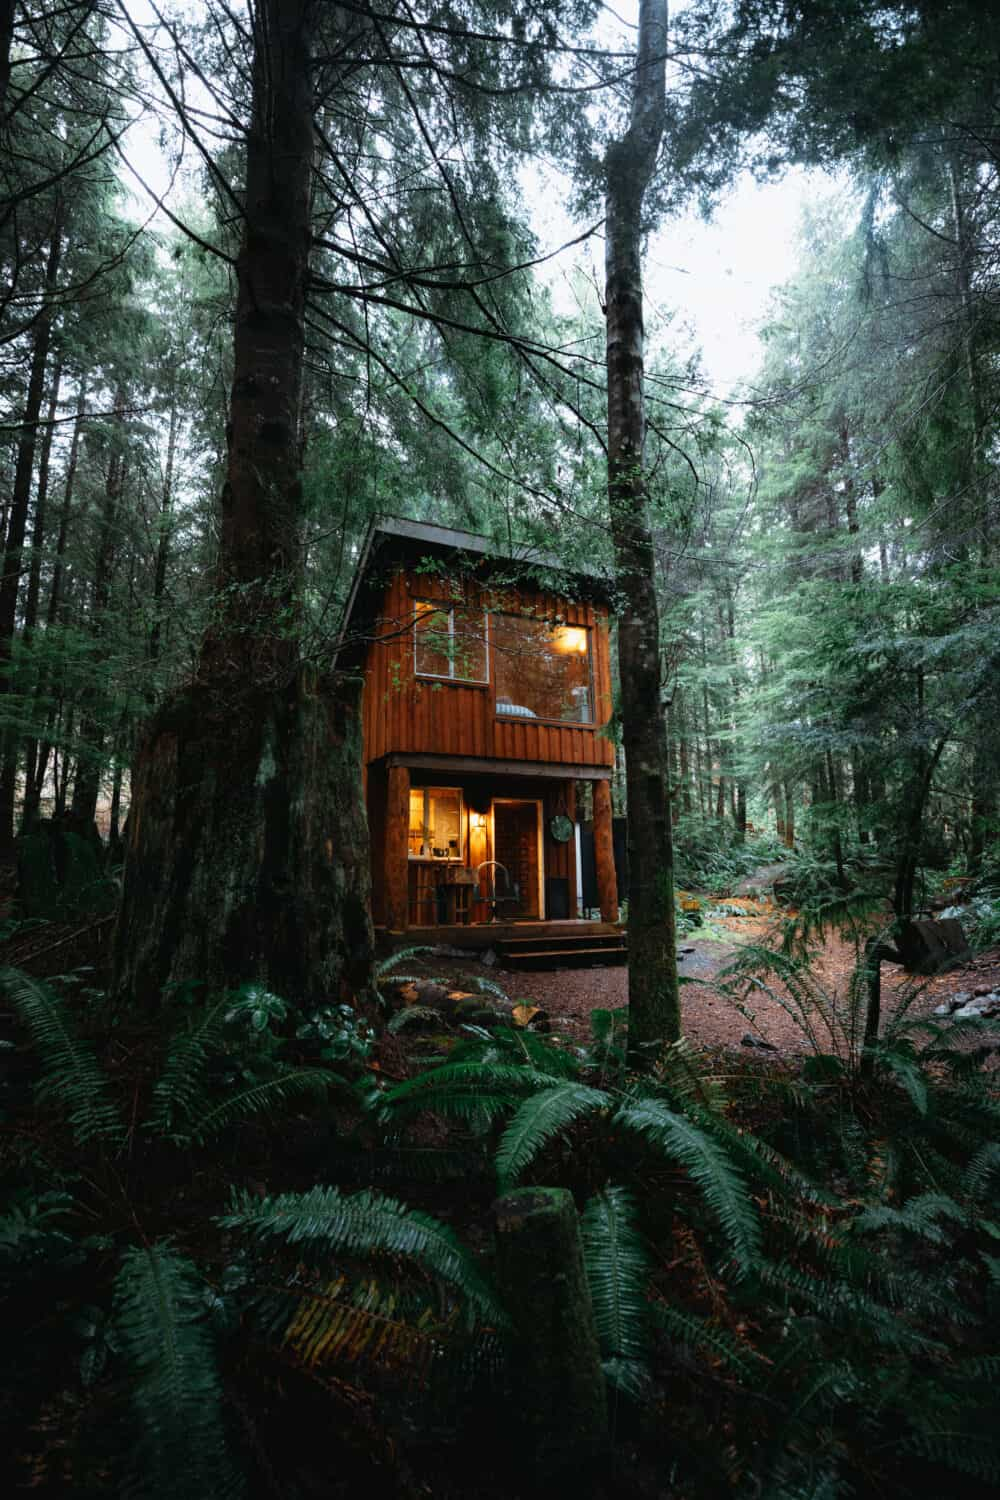 Pacific Northwest Cabins - Fern Gully - Vancouver Island